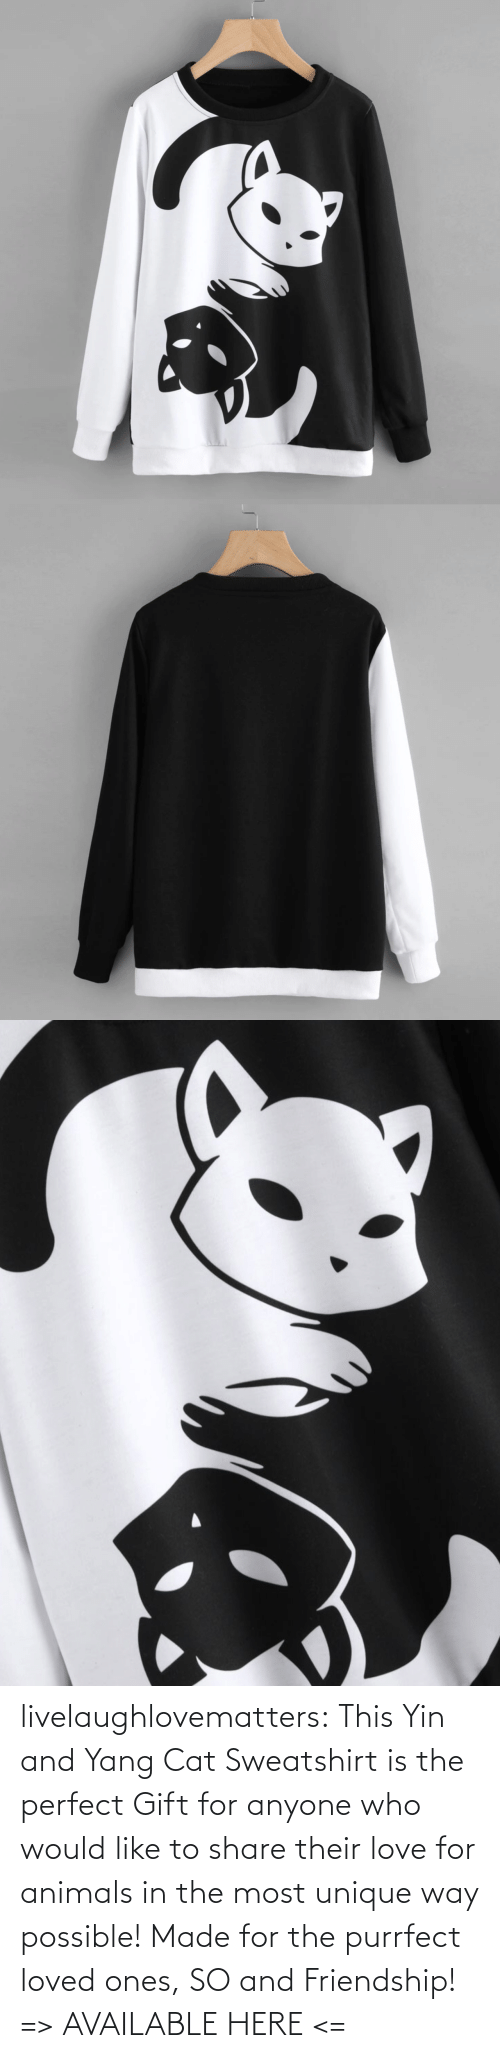 Loved: livelaughlovematters: This Yin and Yang Cat Sweatshirt is the perfect Gift for anyone who would like to share their love for animals in the most unique way possible! Made for the purrfect loved ones, SO and Friendship!  => AVAILABLE HERE <=